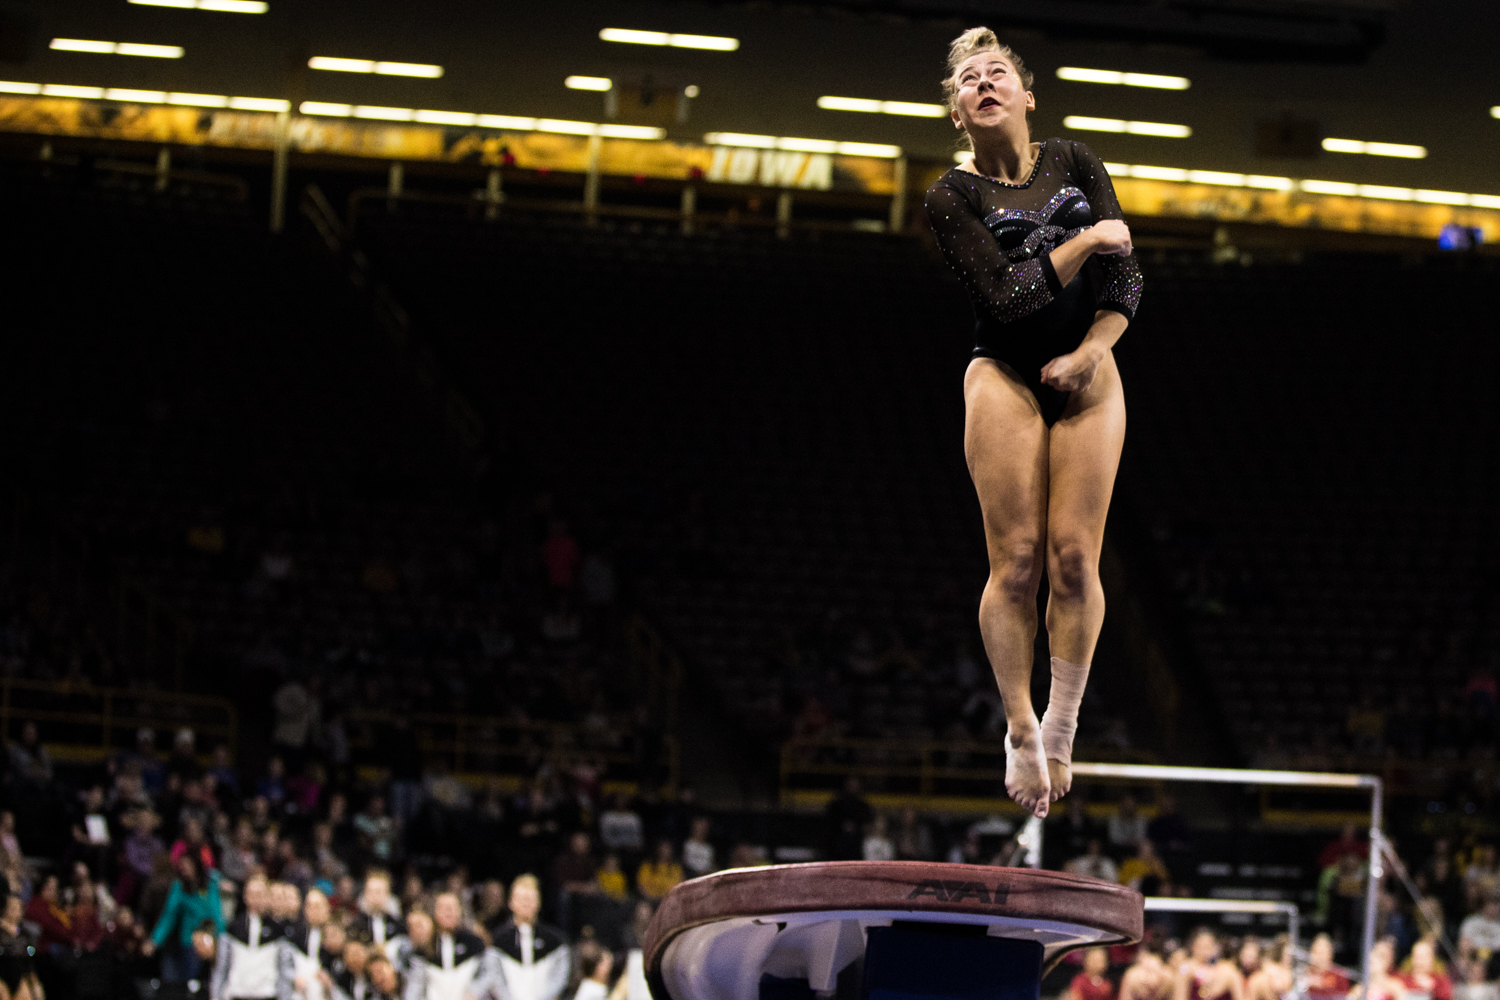 Iowa%27s+Alex+Greenwald+competes+on+vault+during+a+women%27s+gymnastics+meet+between+Iowa+and+Iowa+State+at+Carver-Hawkeye+Arena+on+Friday%2C+March+1%2C+2019.+Greenwald+scored+9.700+in+the+event.+The+Hawkeyes%2C+celebrating+senior+night%2C+fell+to+the+Cyclones%2C+196.275-196.250.